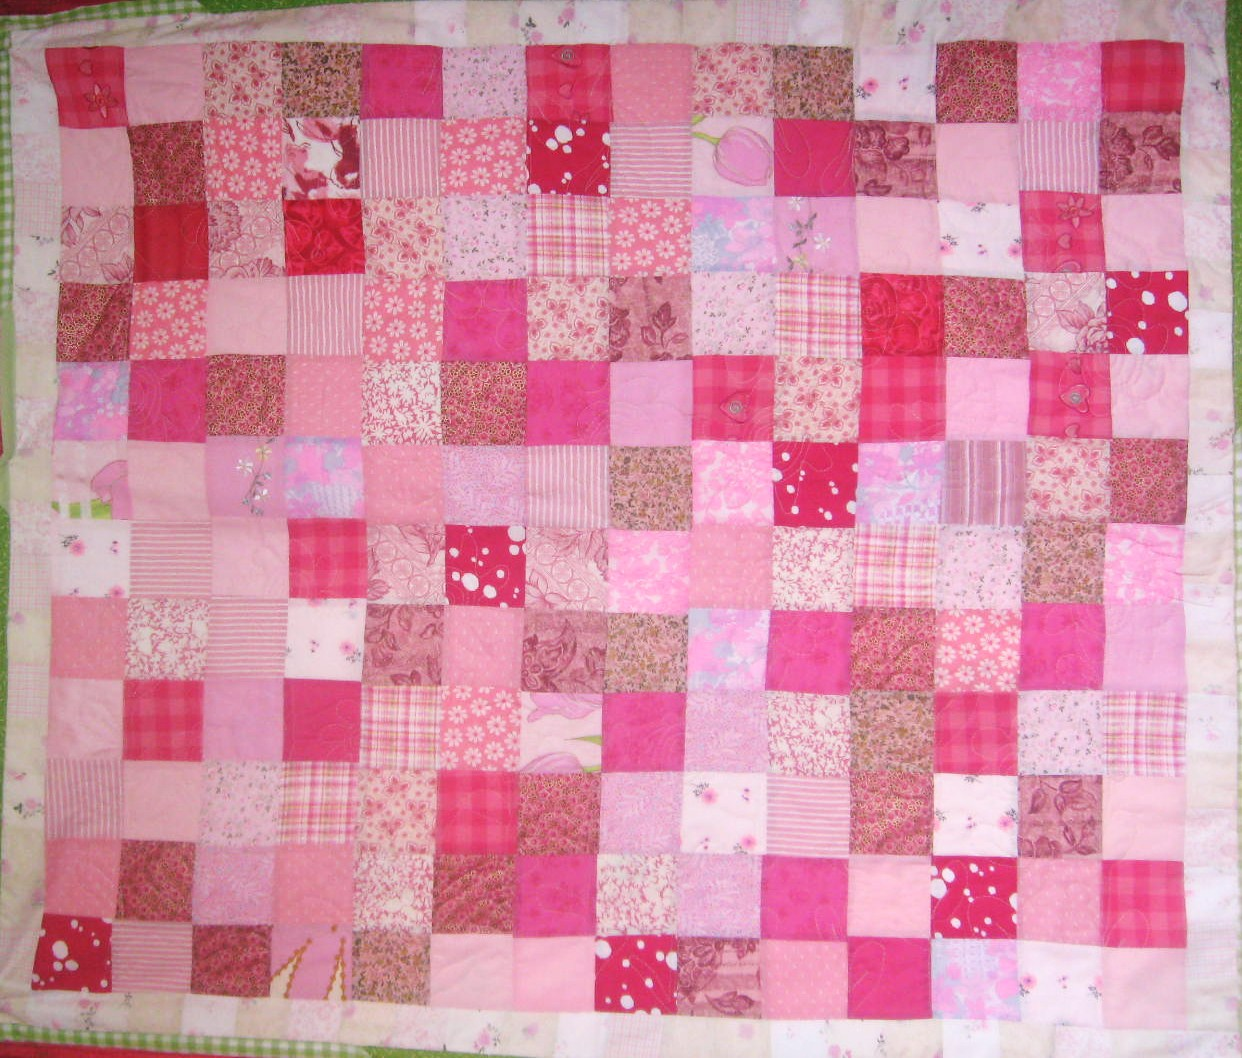 Verry Sherry: Payback with Pink Patchwork : pink patchwork quilts - Adamdwight.com